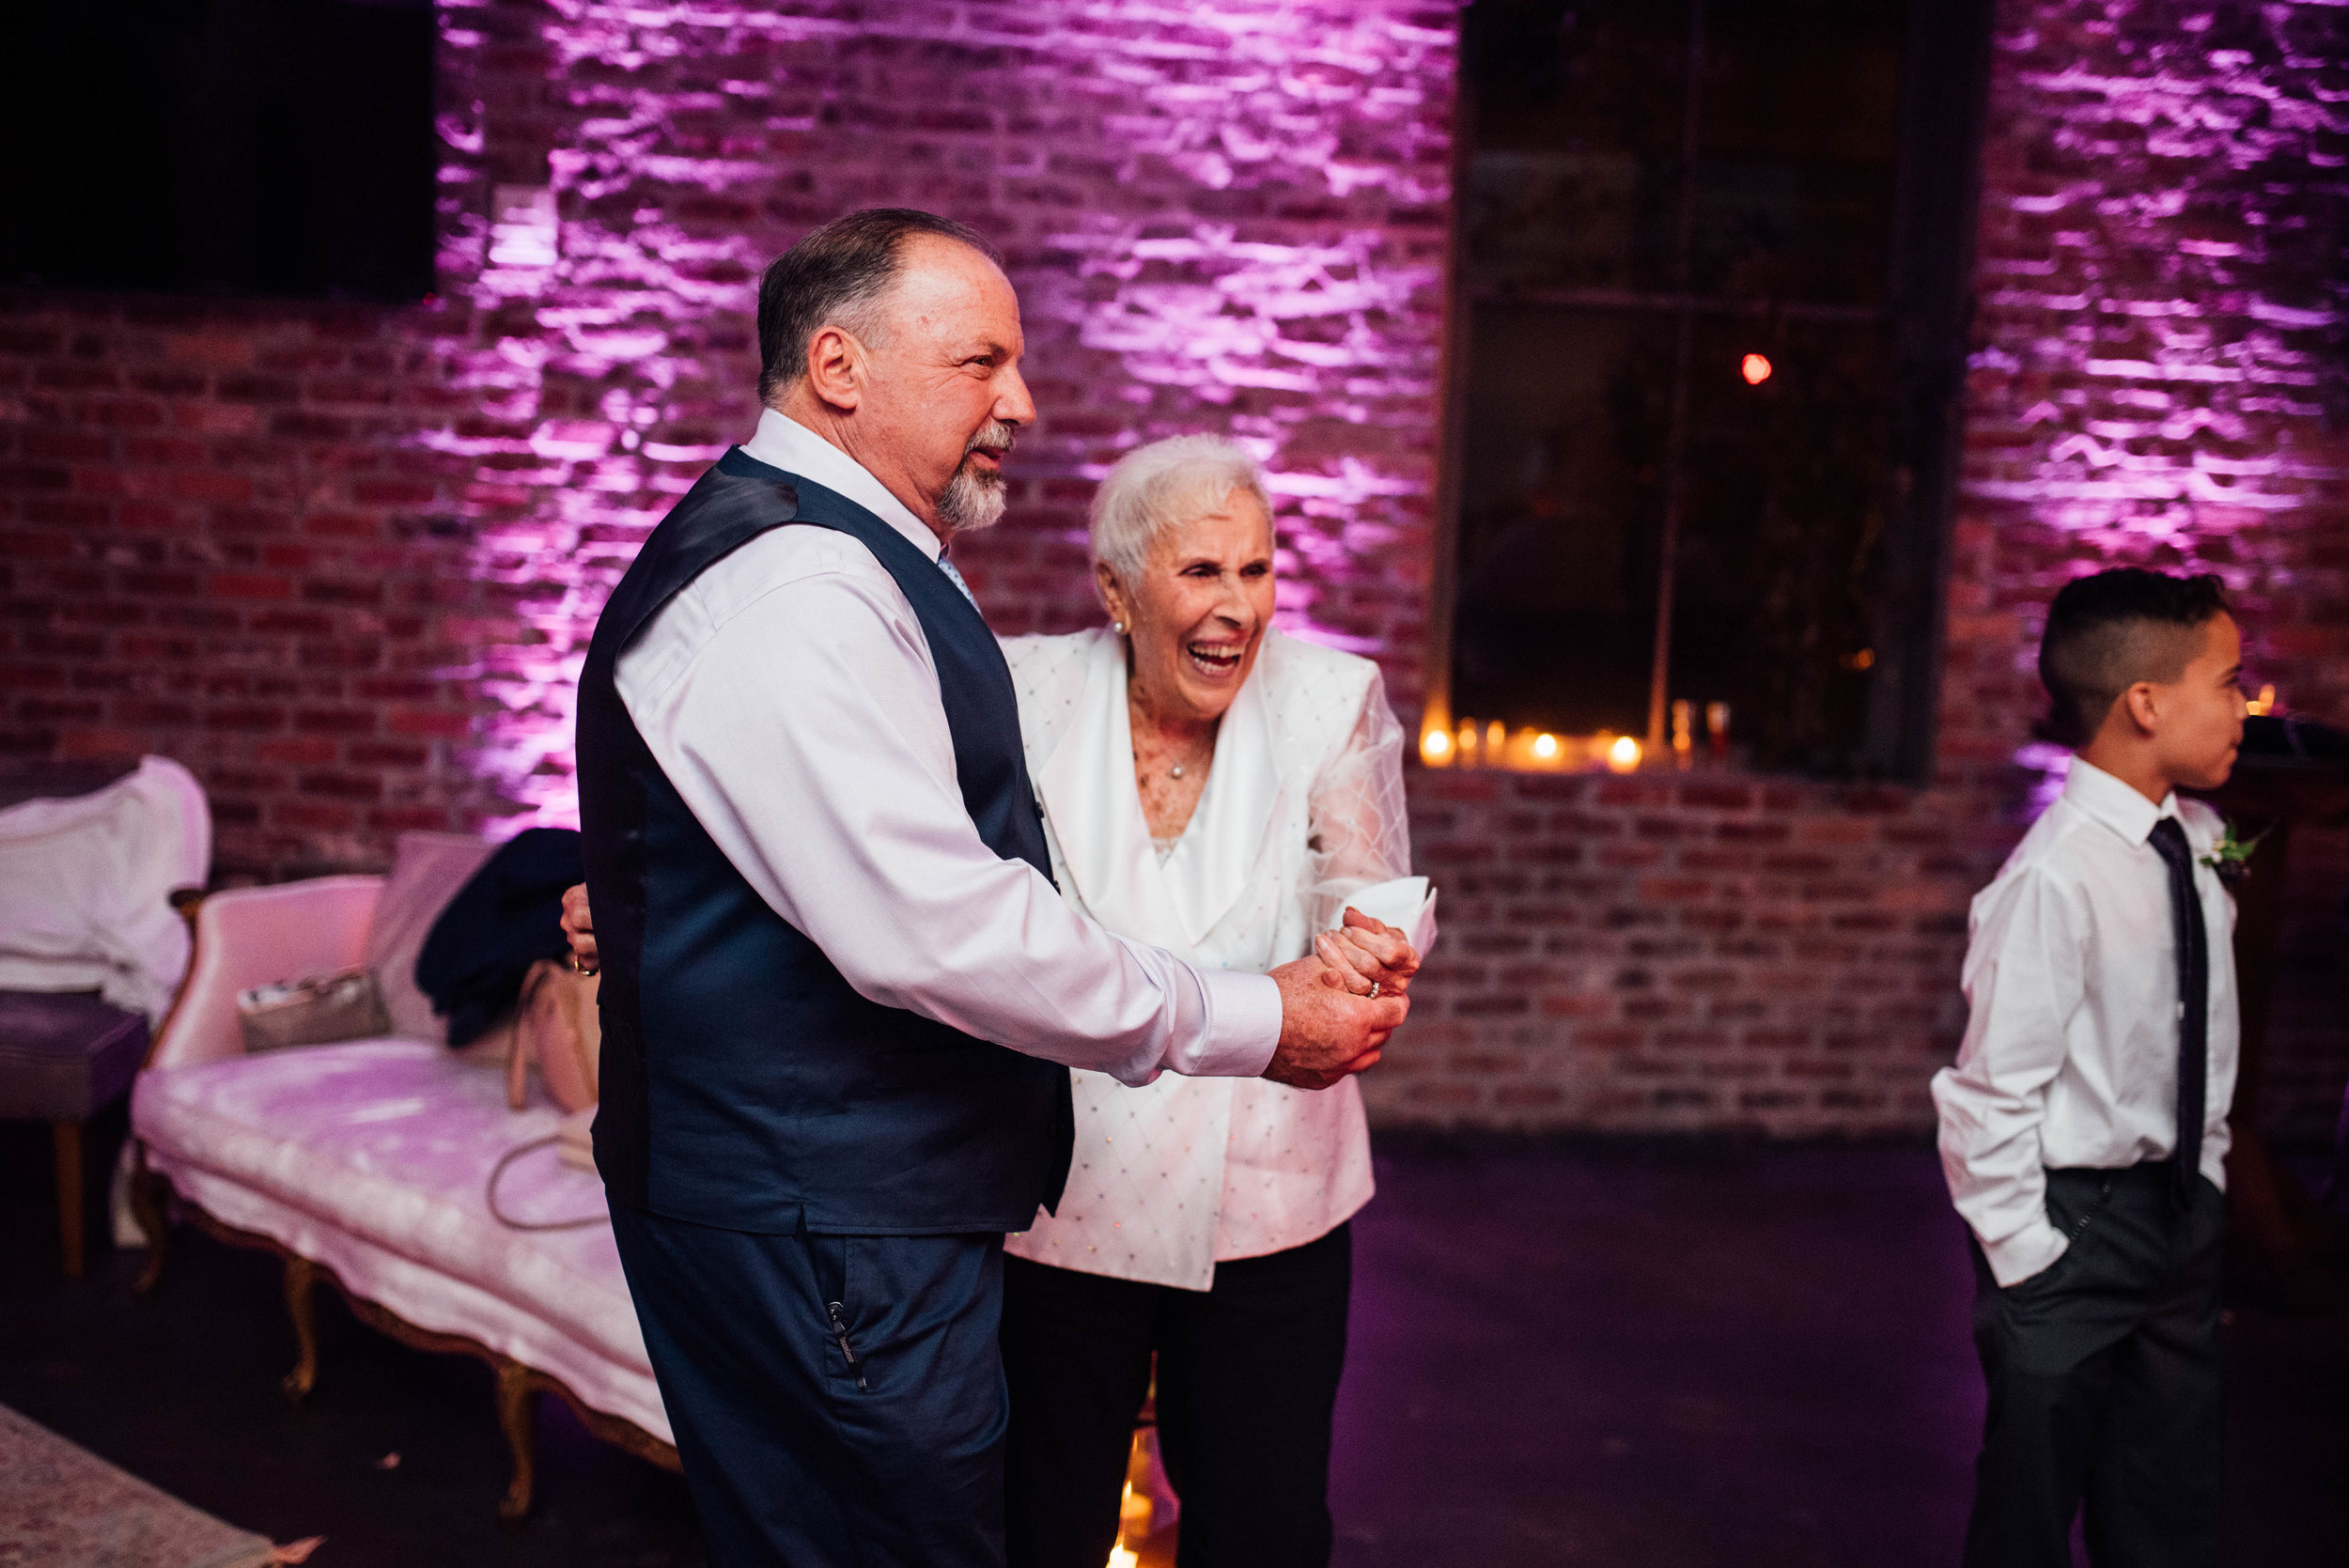 Ashley + Tommy-30_90-New-Orleans-Wedding-PhotosGabby Chapin_Originals_02242.jpg